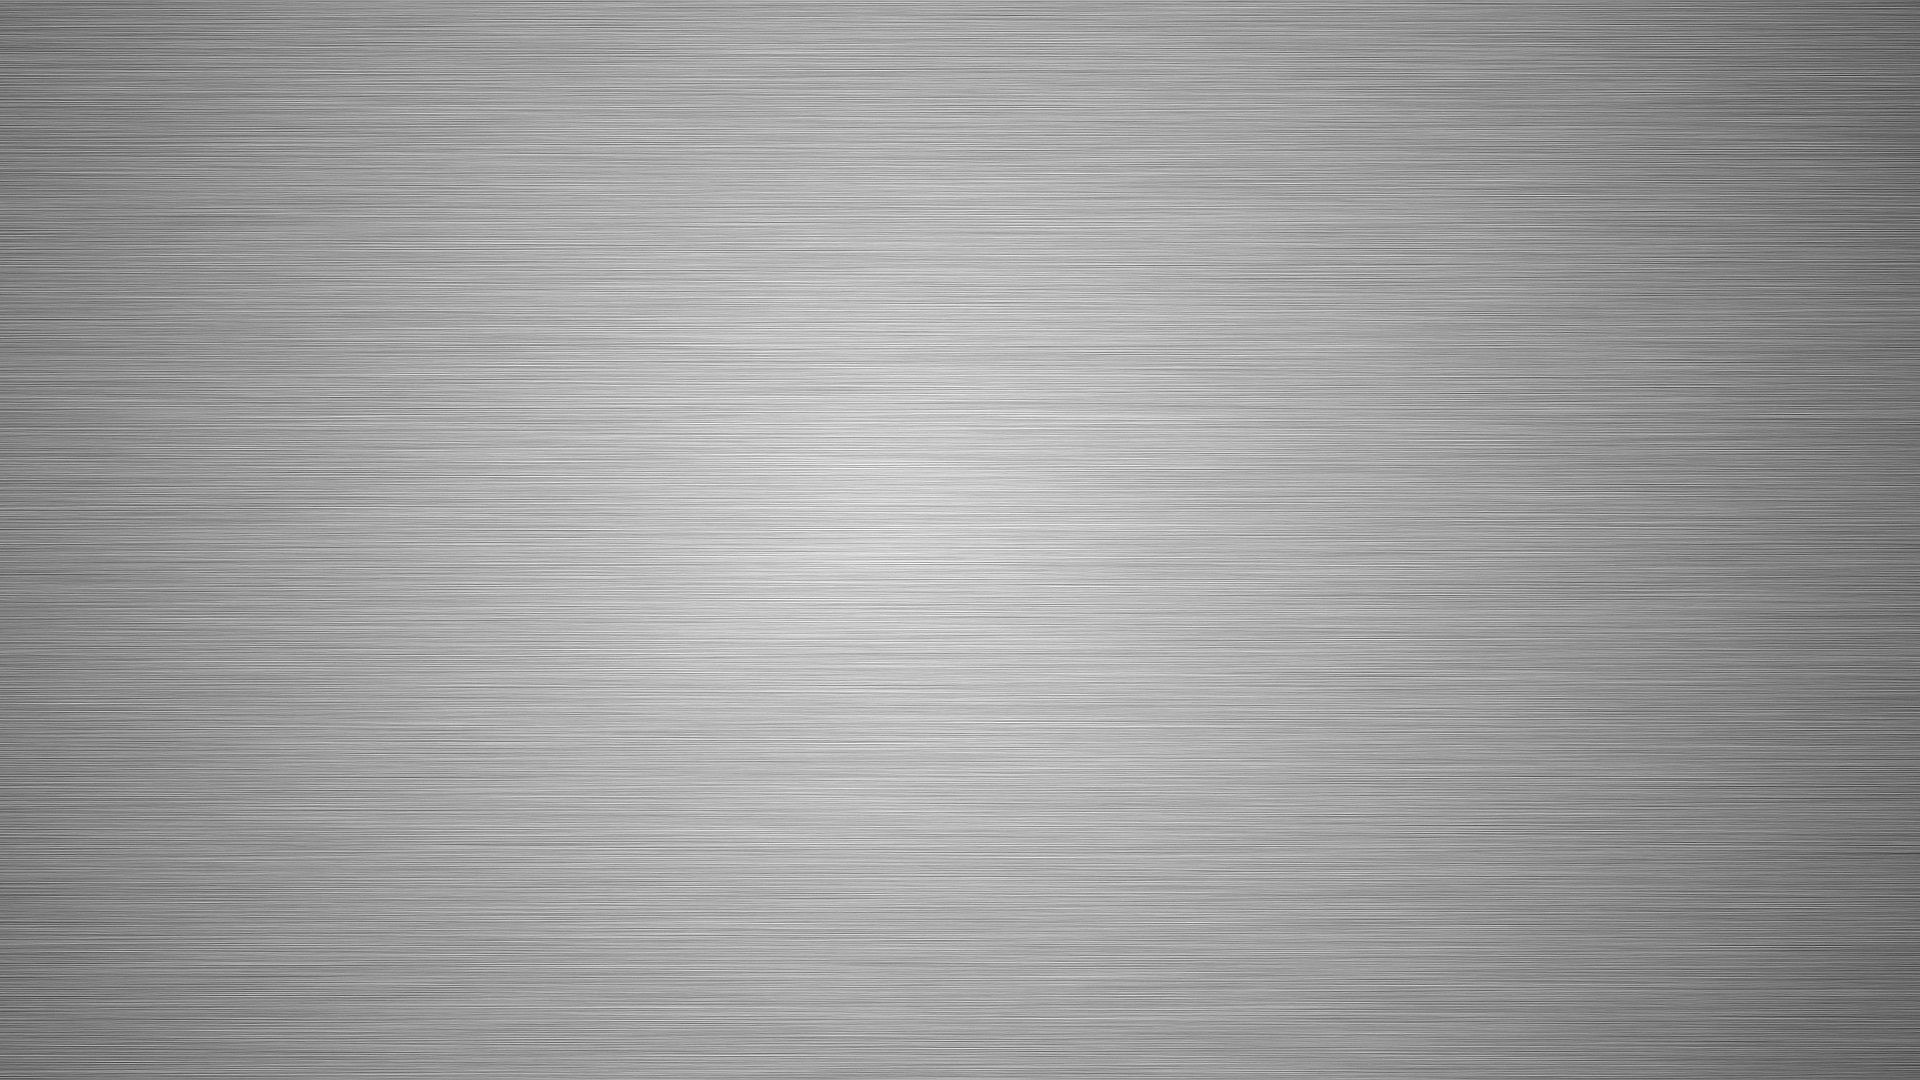 Brushed-Aluminum-Cave-wallpaper-wp3603728